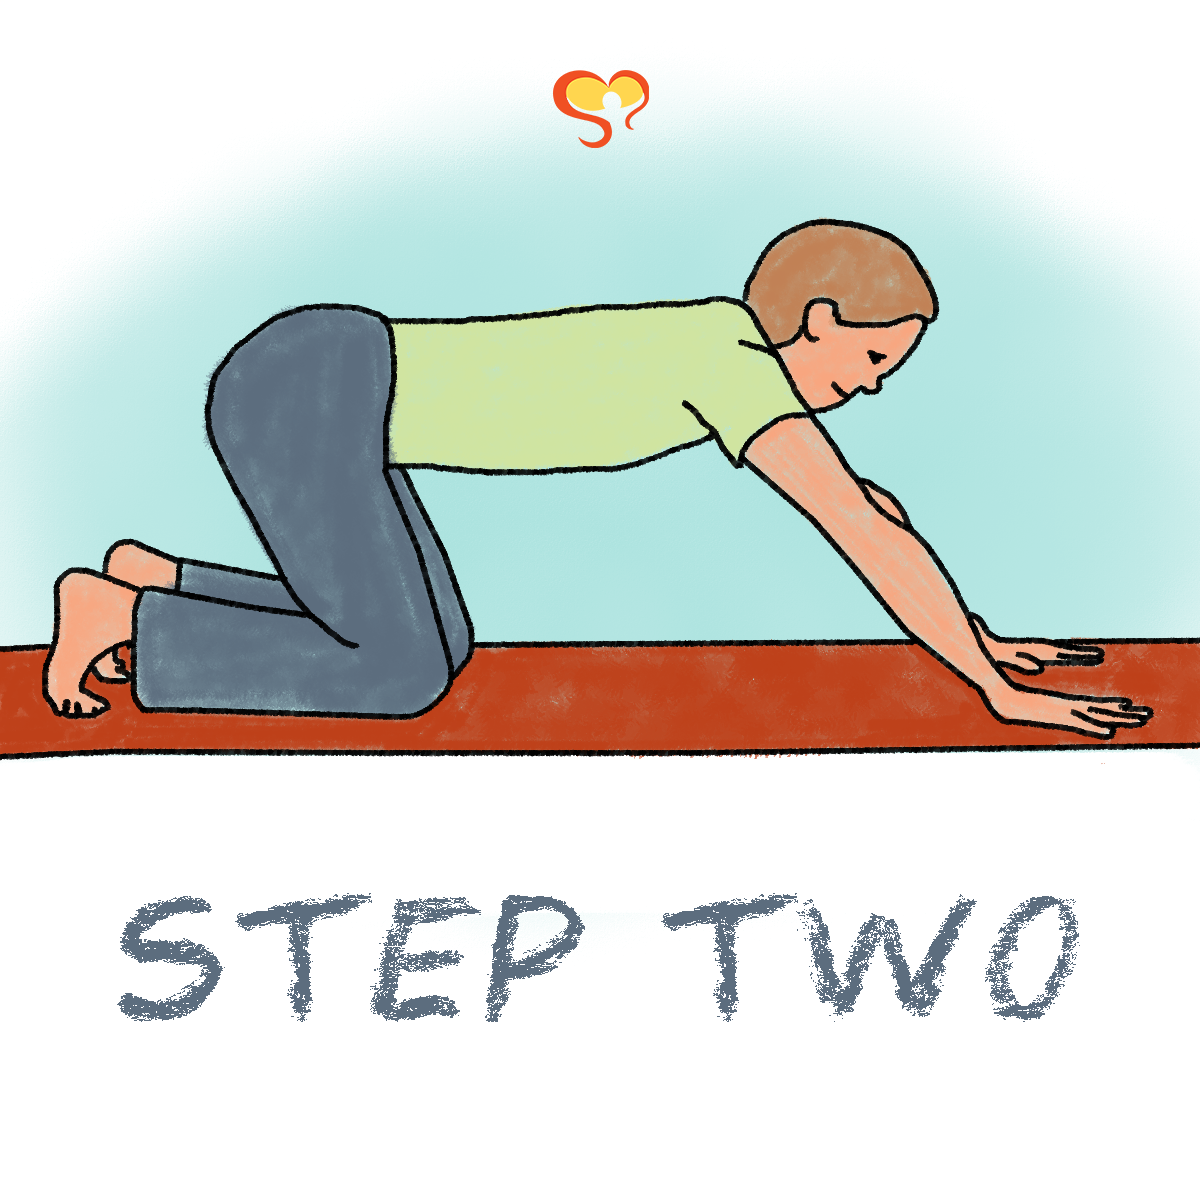 Step2 Final png ey1OEZrh - Puppy Pose - Meditation Monday